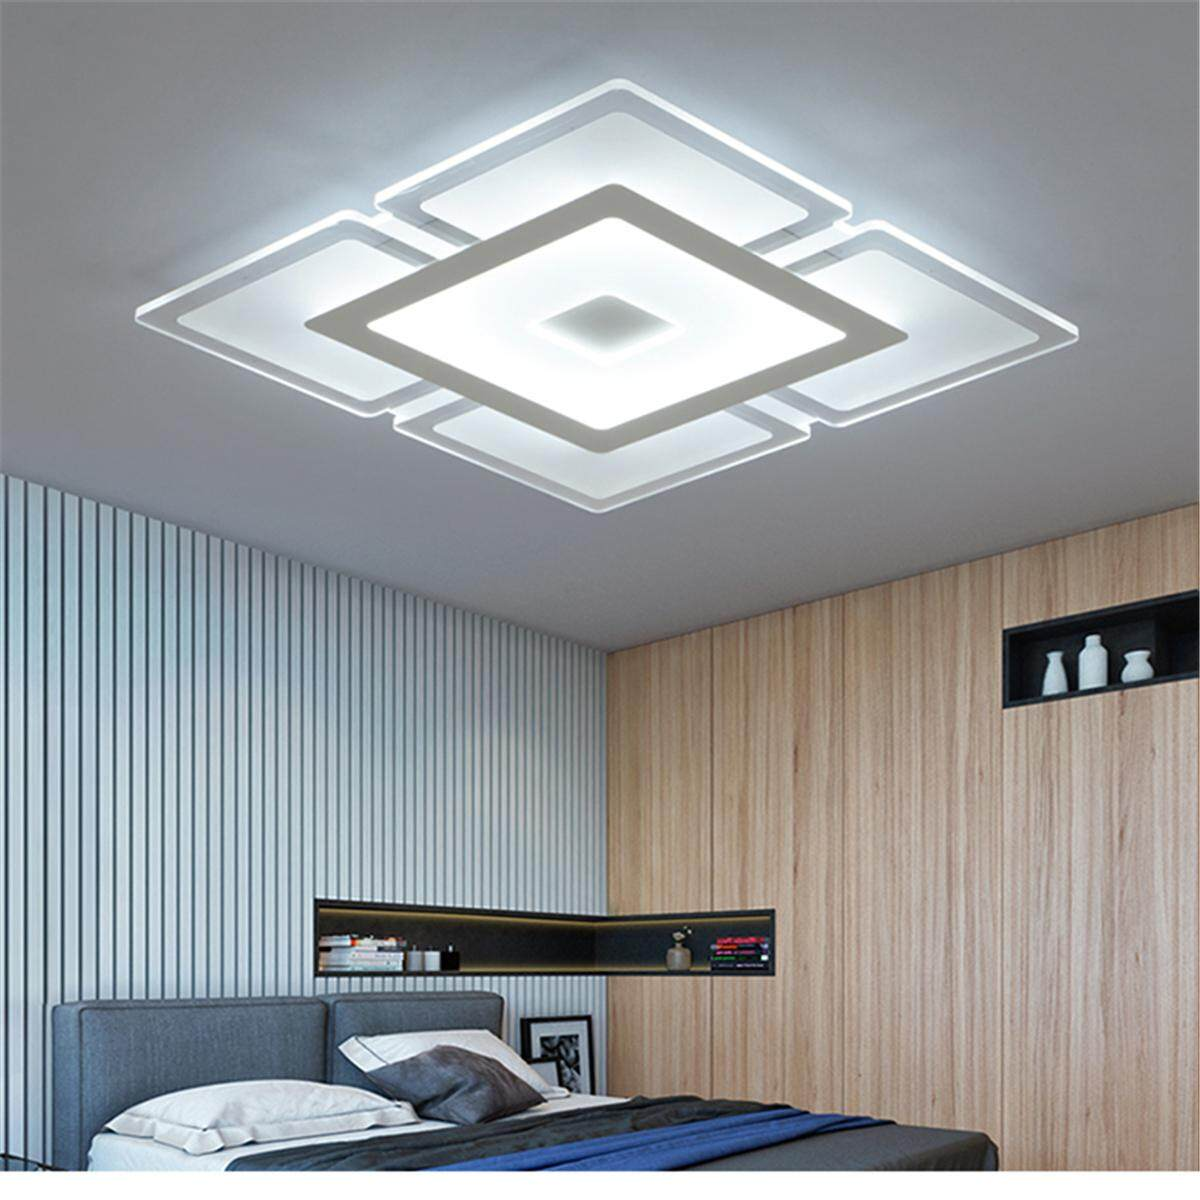 Rectangular Acrylic Modern LED Ceiling Light Living Room Bedroom Square Lighting#White Light